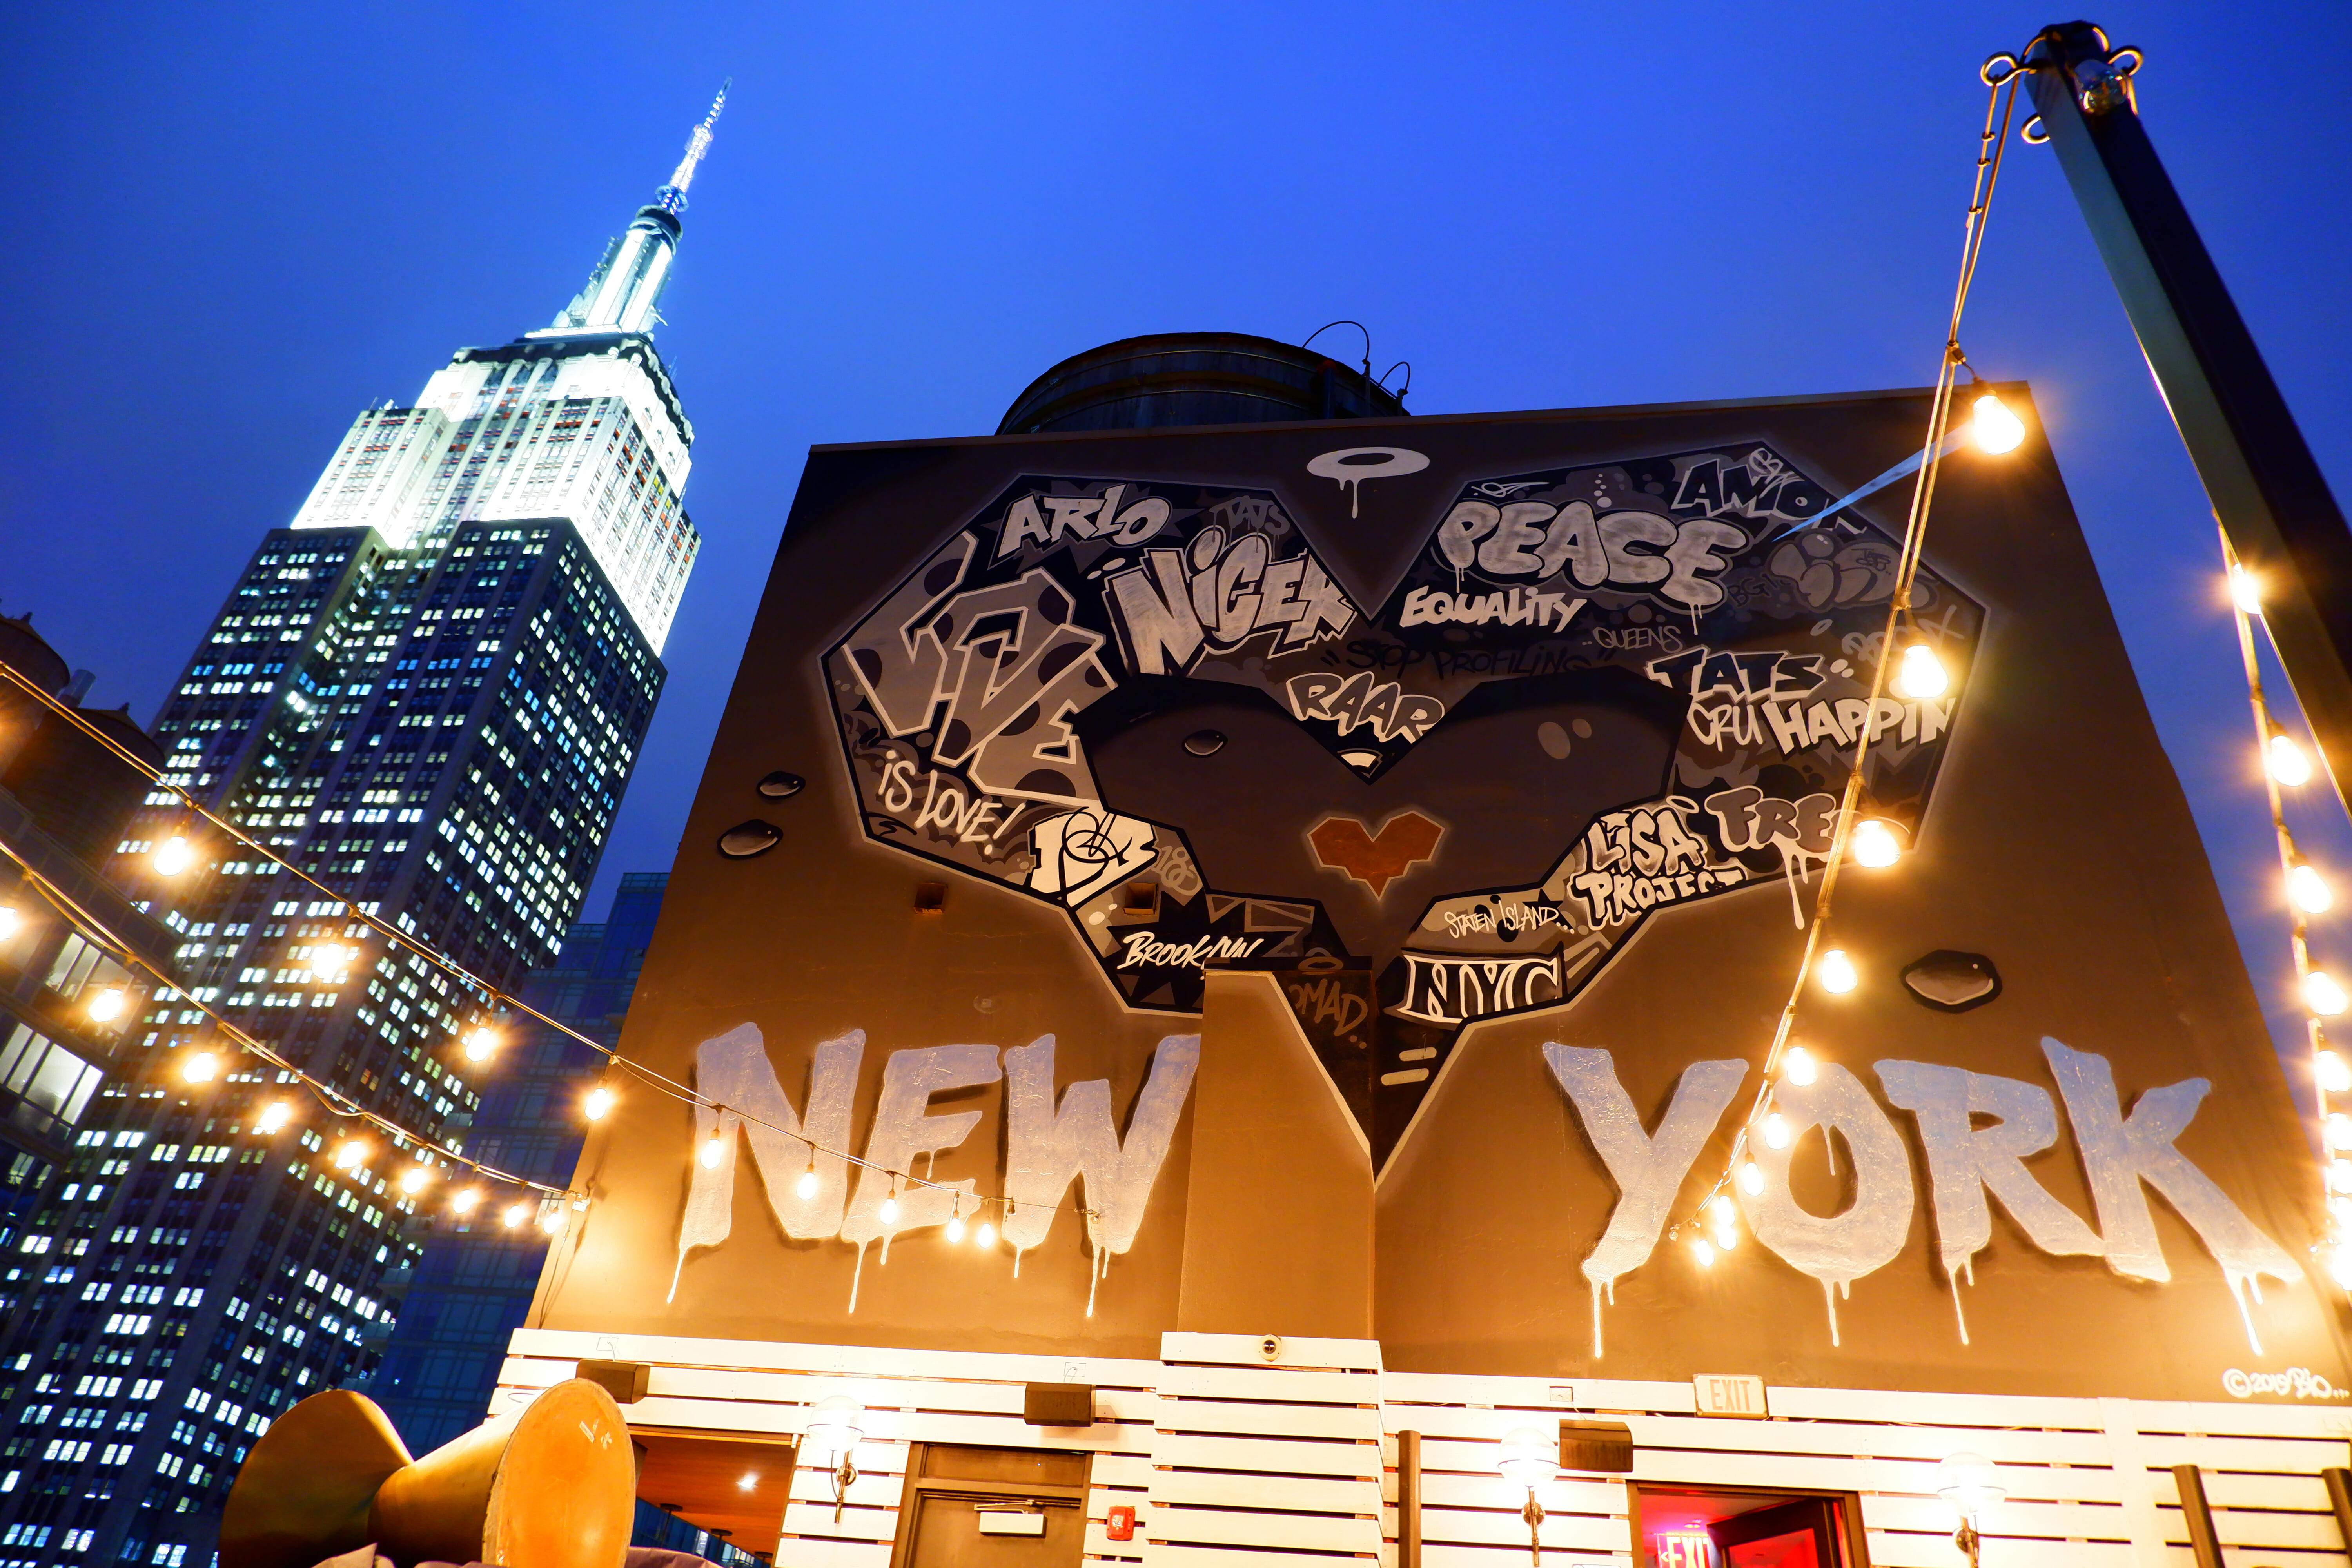 Street Art in NYC – High Quality Wallpaper